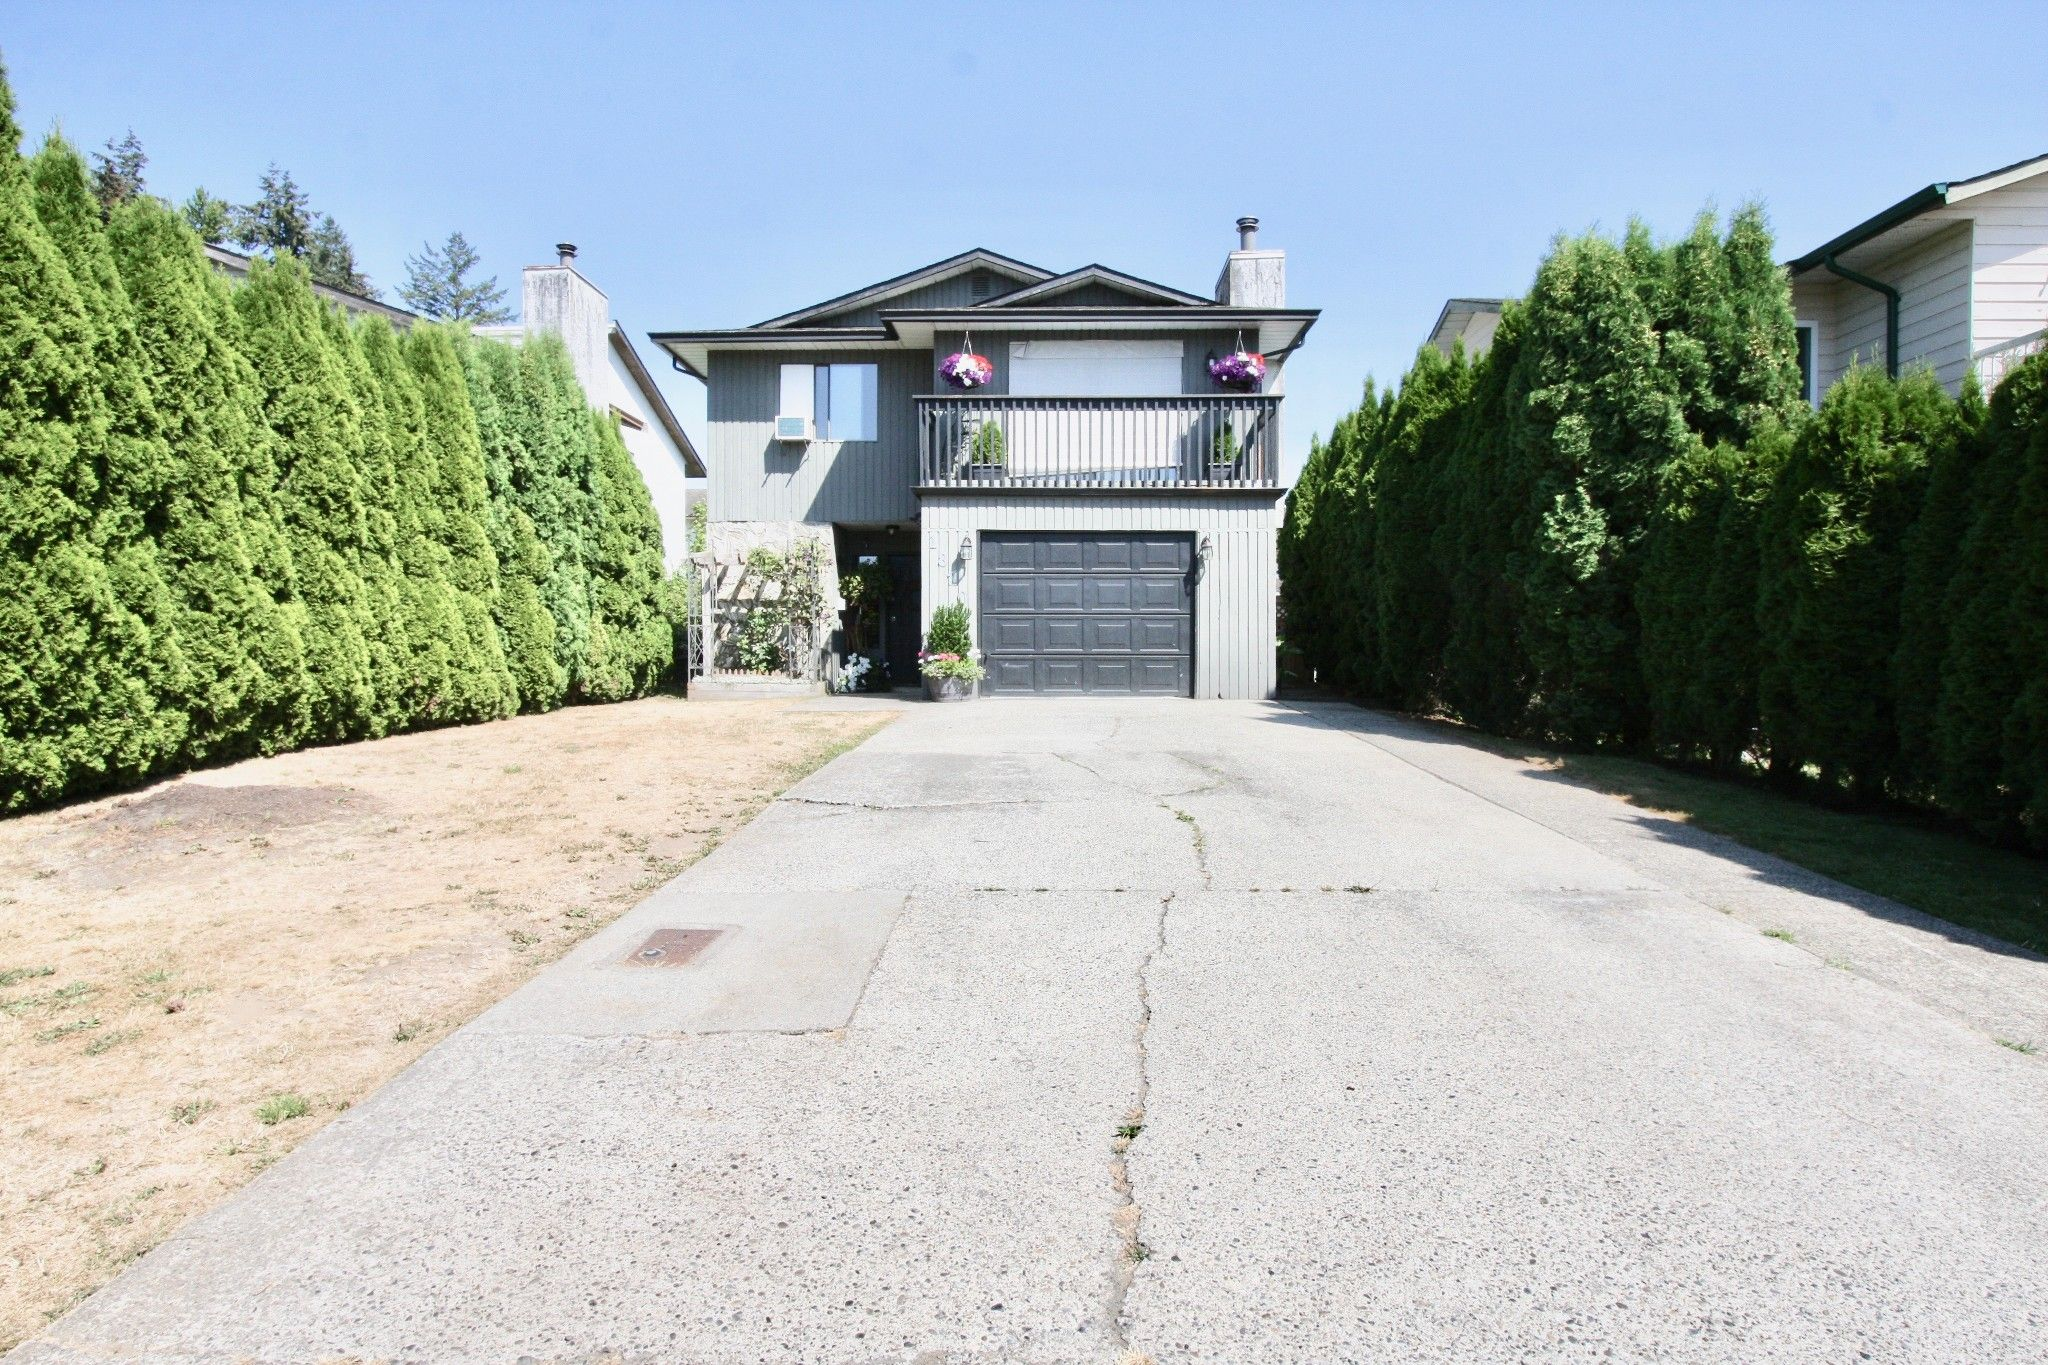 Main Photo: 1820 Keys Place in Abbotsford: Central Abbotsford House for sale : MLS®# R2606197